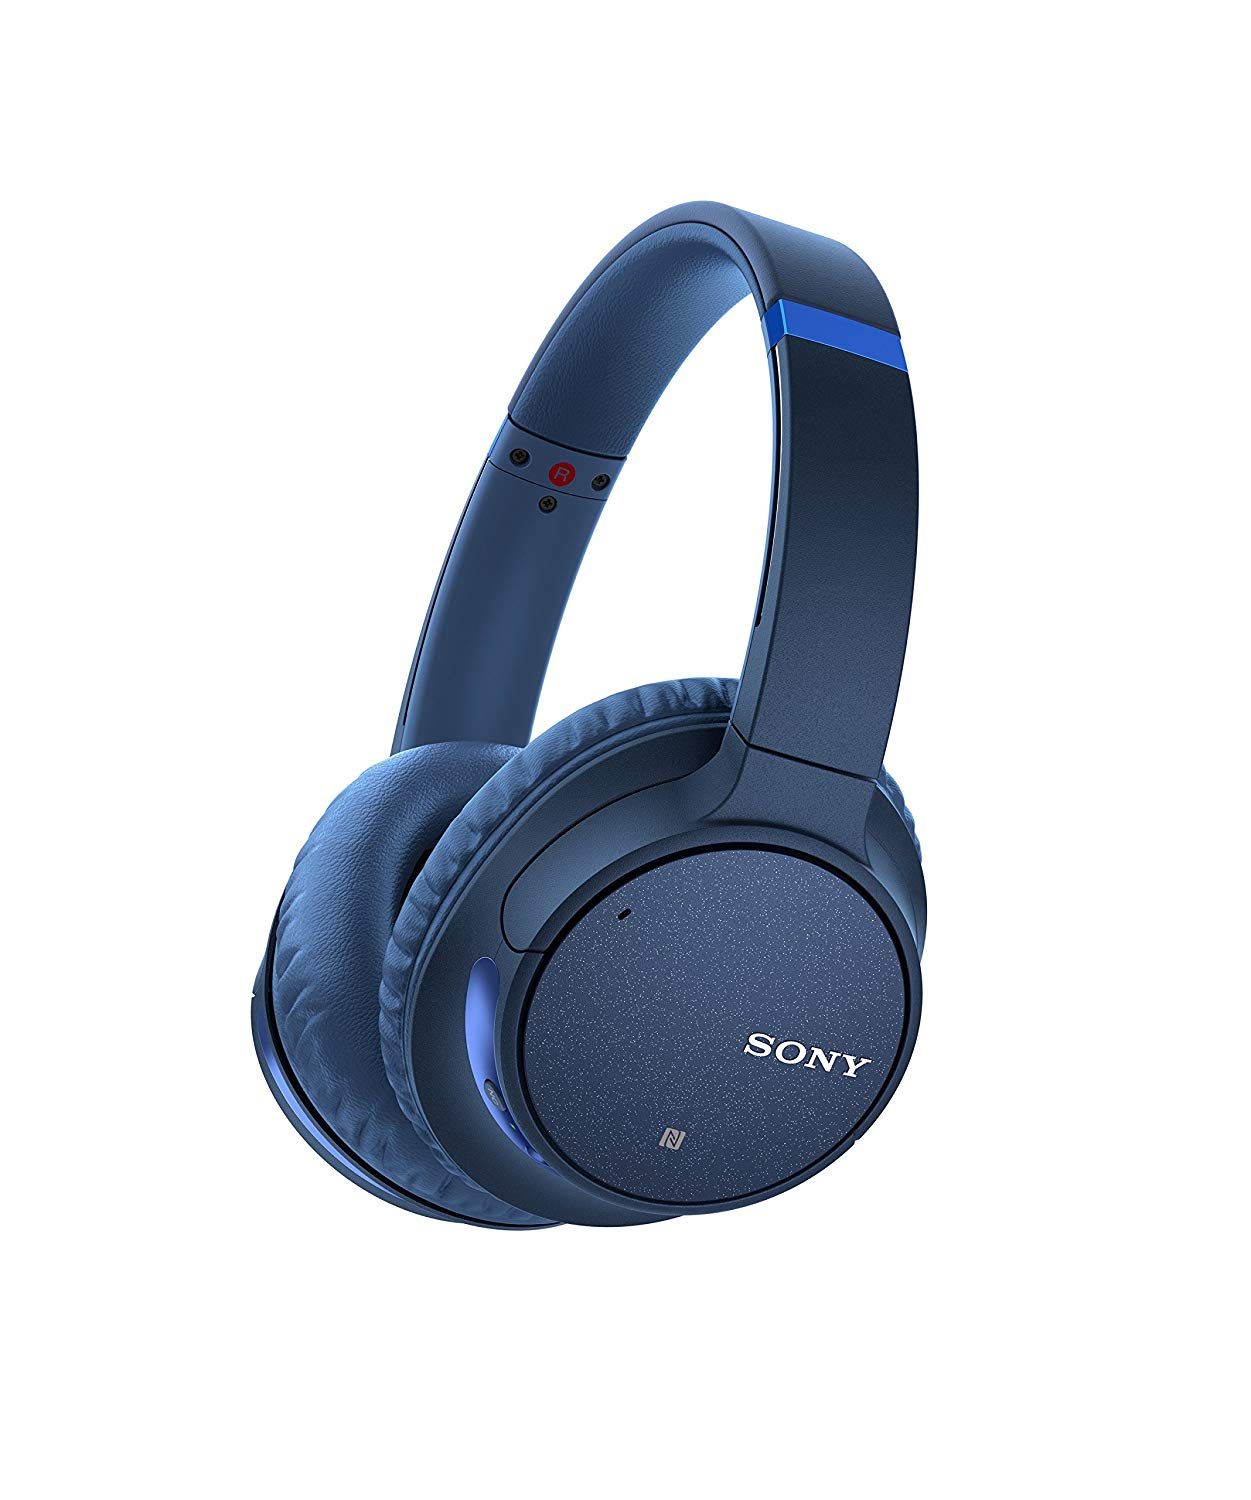 Sony Wh-Ch700n Wireless Bluetooth Noise Canceling Over The Ear Headphones